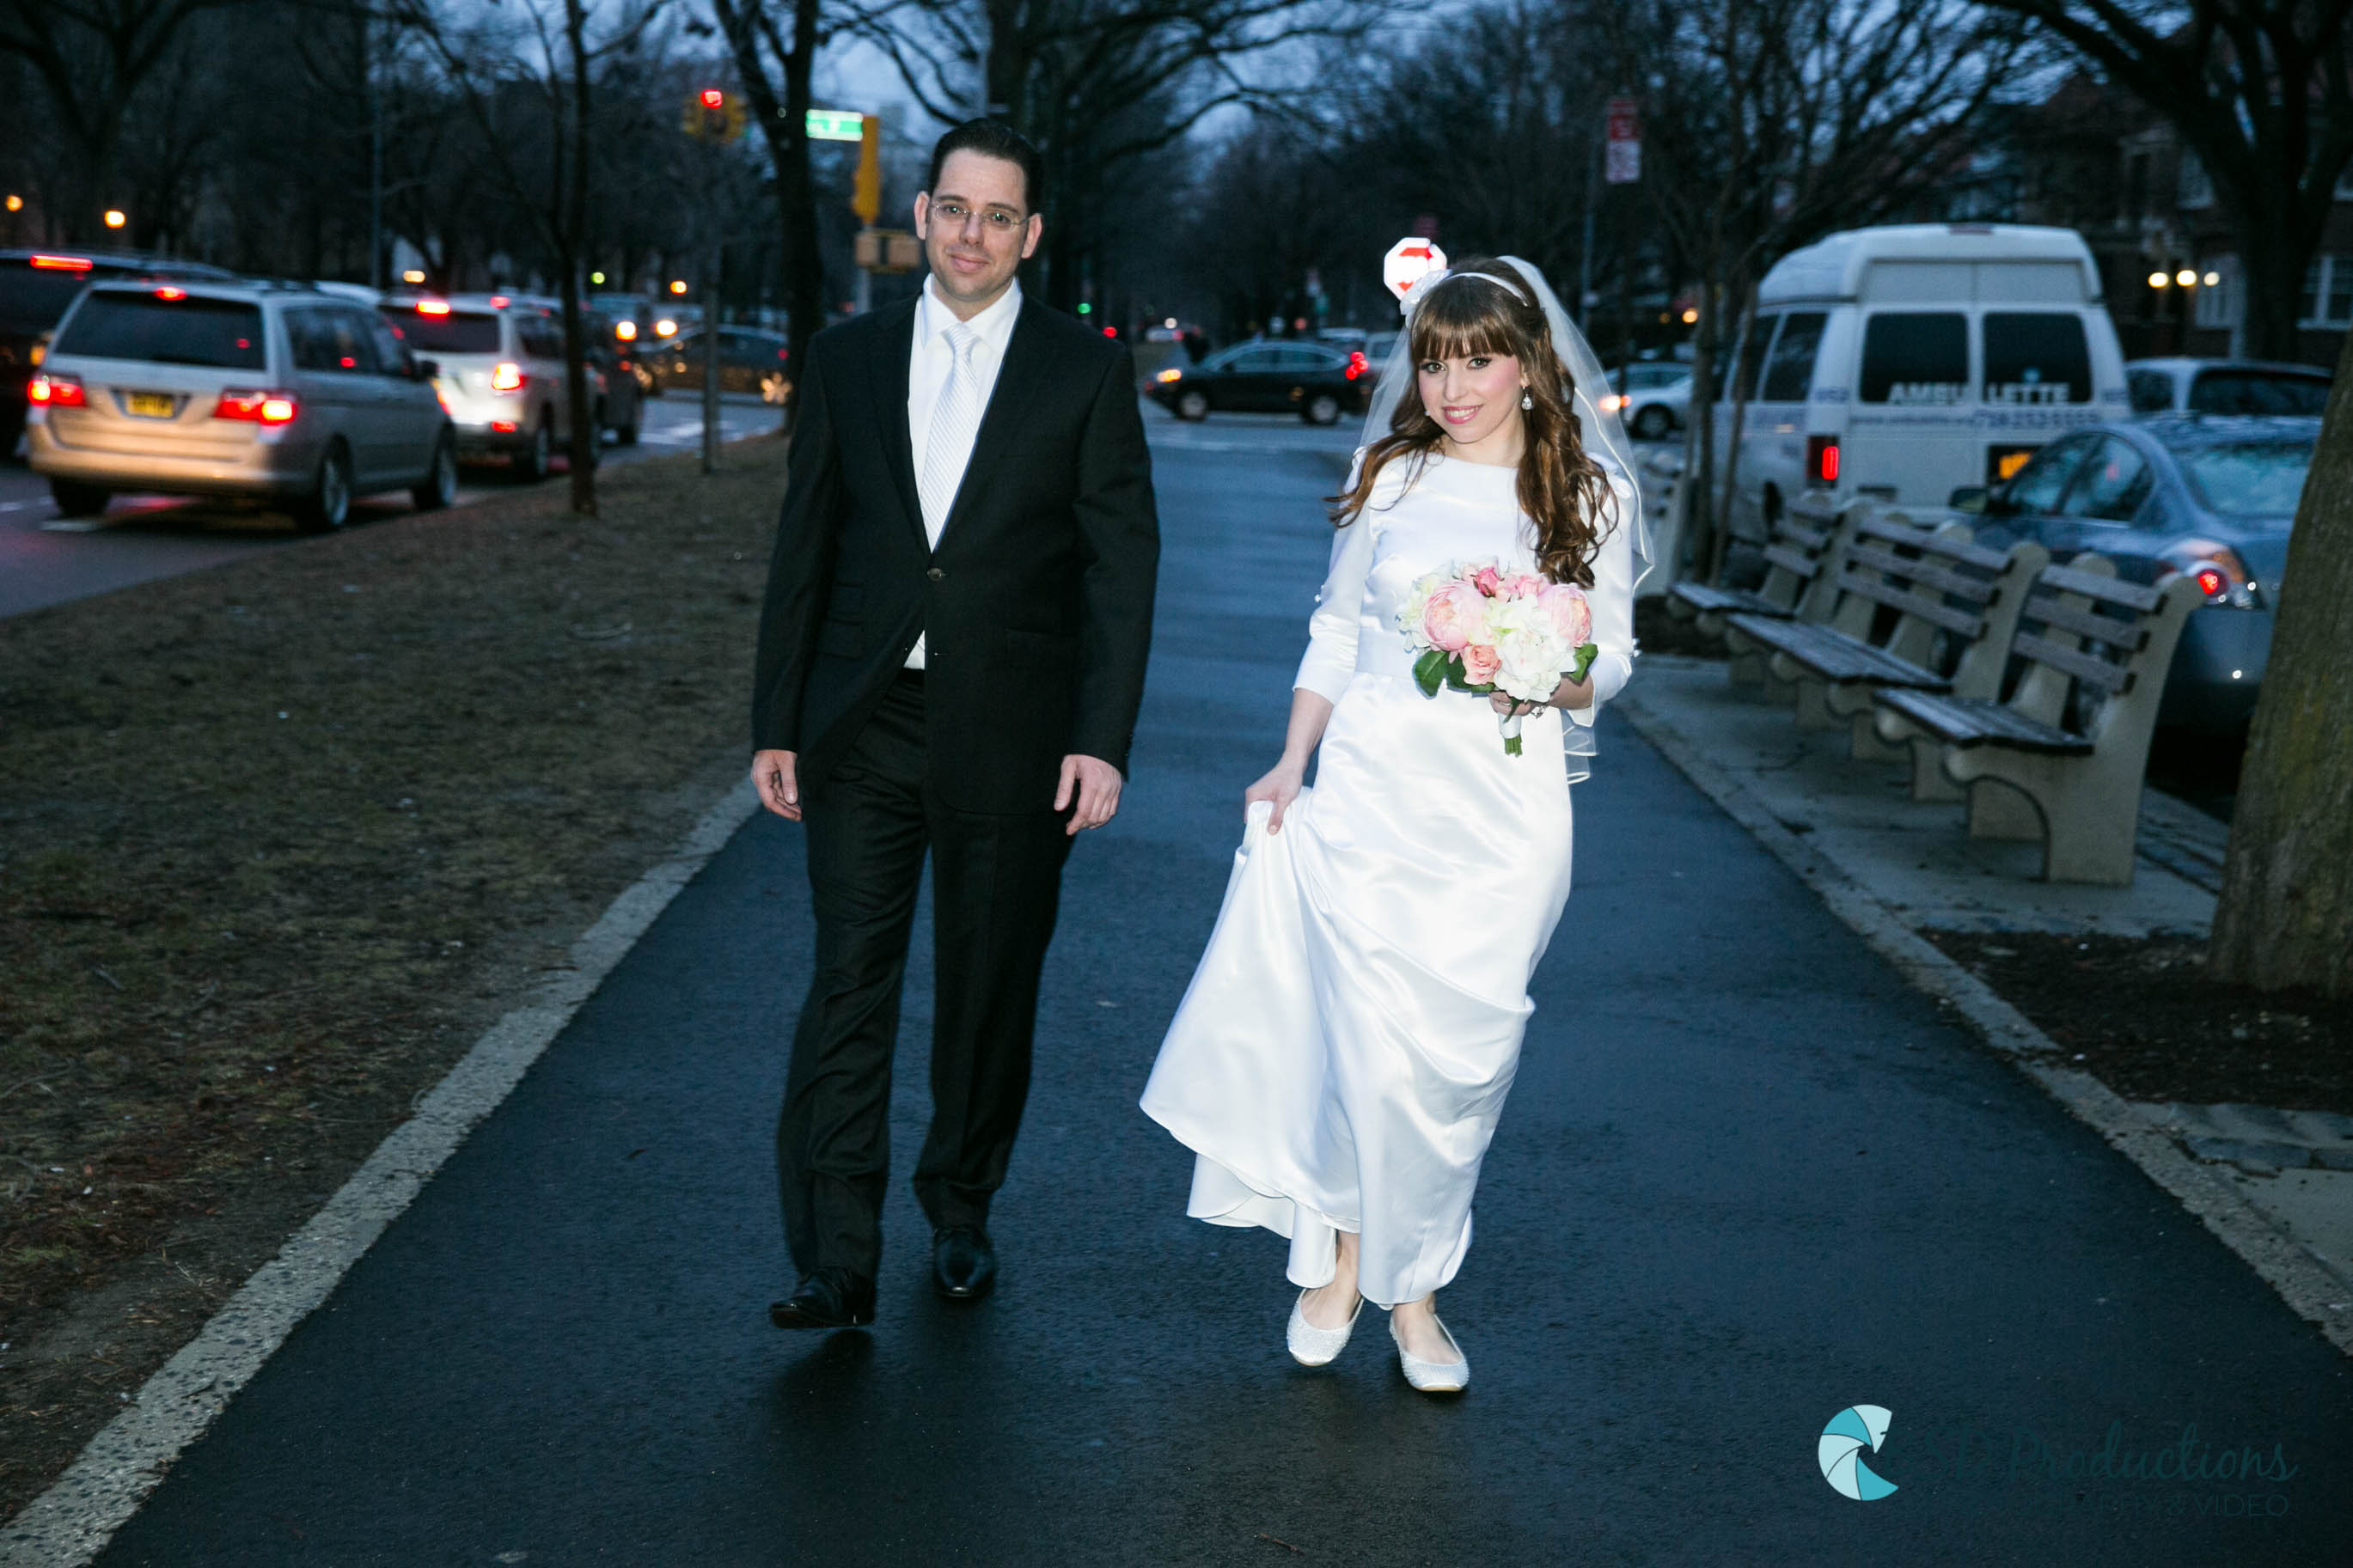 UH5A0027 Wedding – BSD Productions Photography